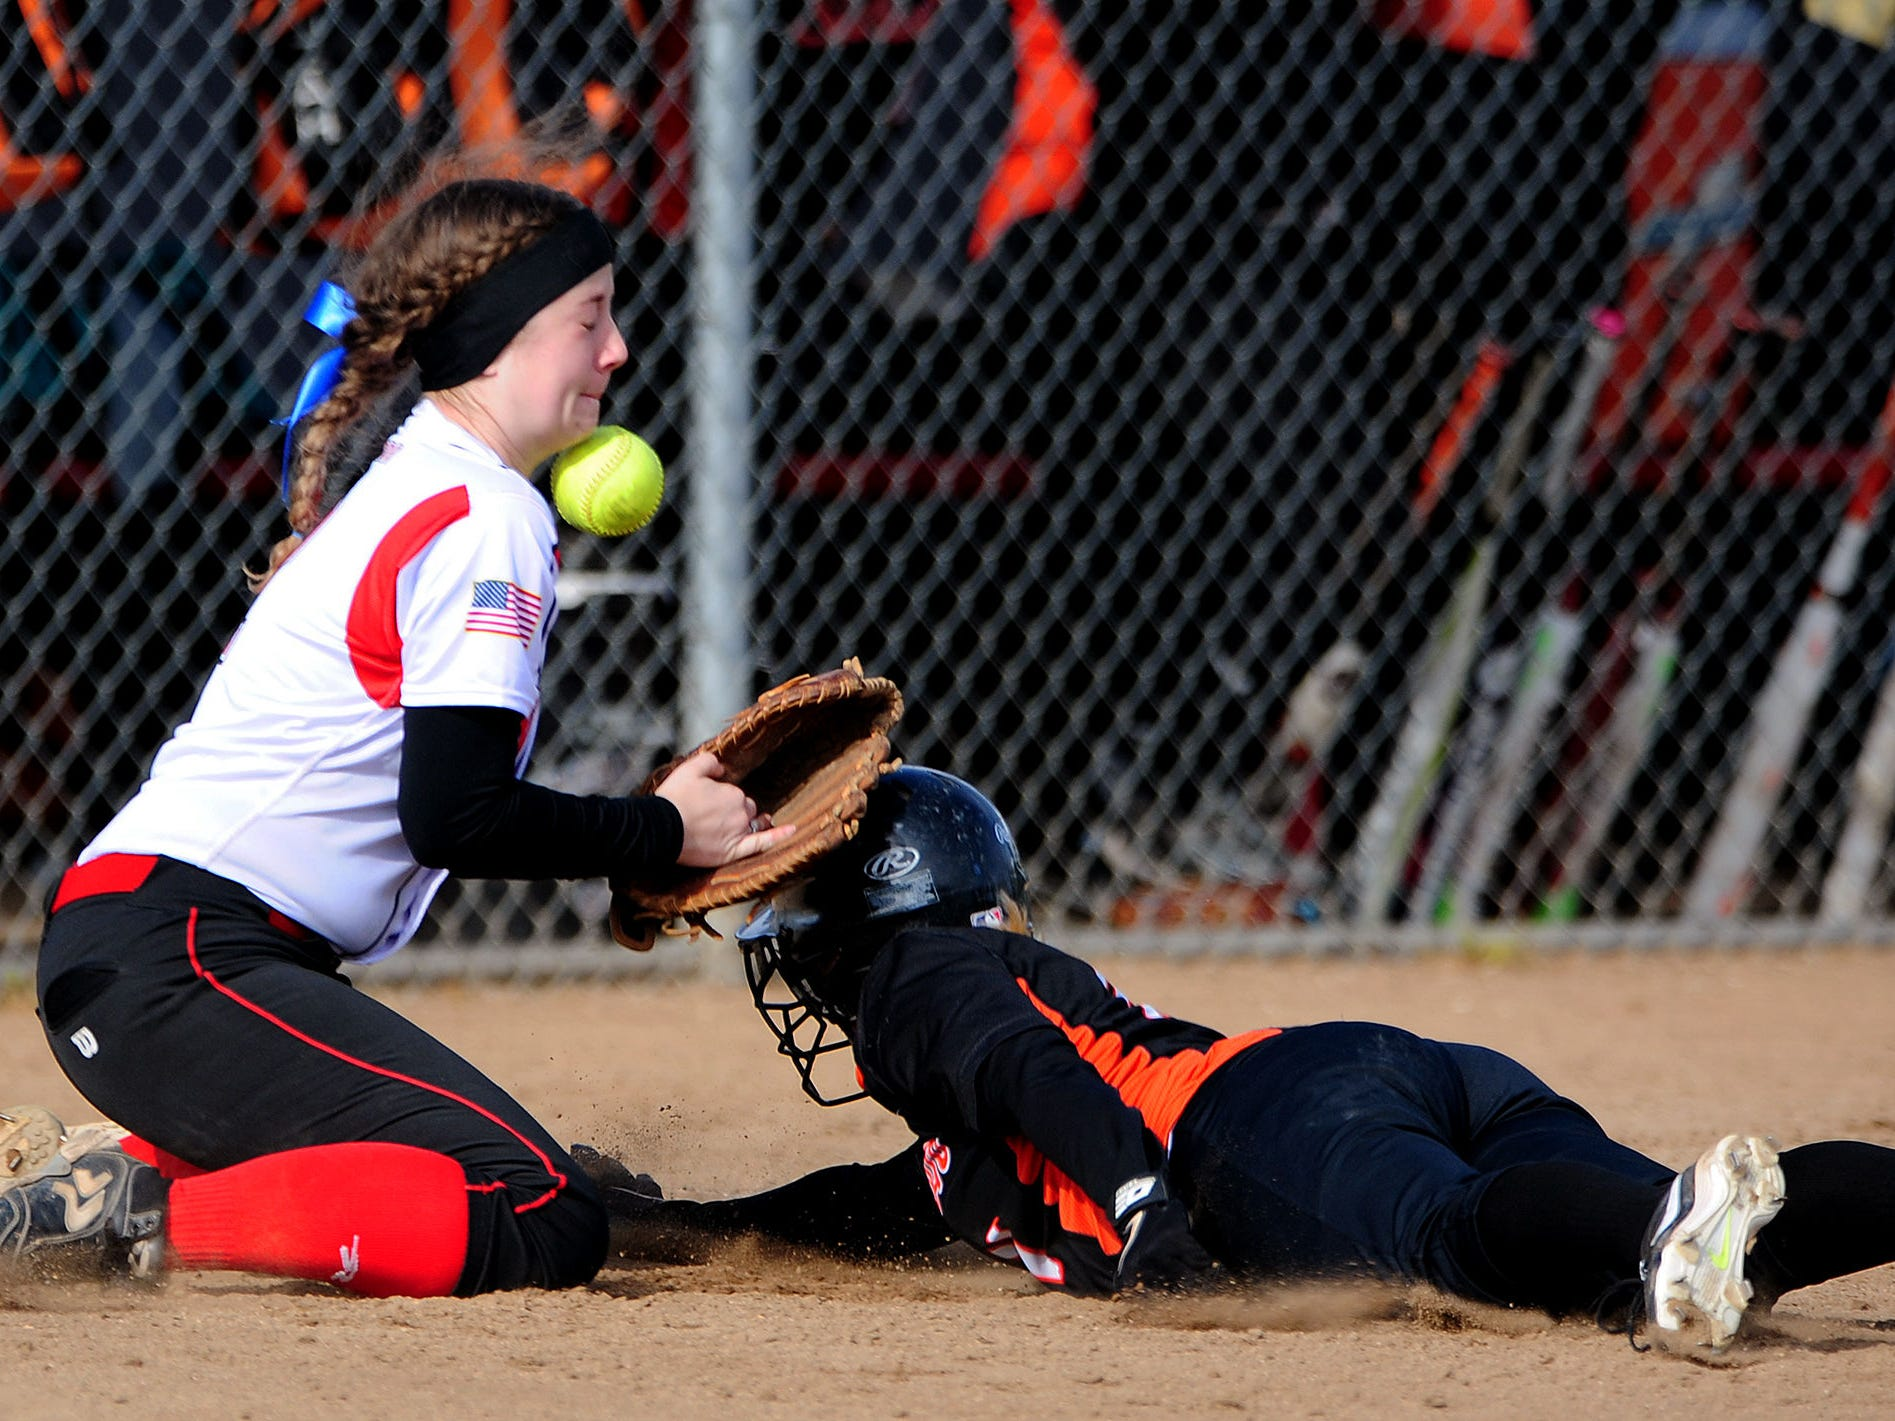 Central's Kaitlyn Noon has the ball bounce into her chin as Silverton's Dianne Allen slides safely back to first base during the first game of a doubleheader, on Friday, April 24, 2015, in Independence.